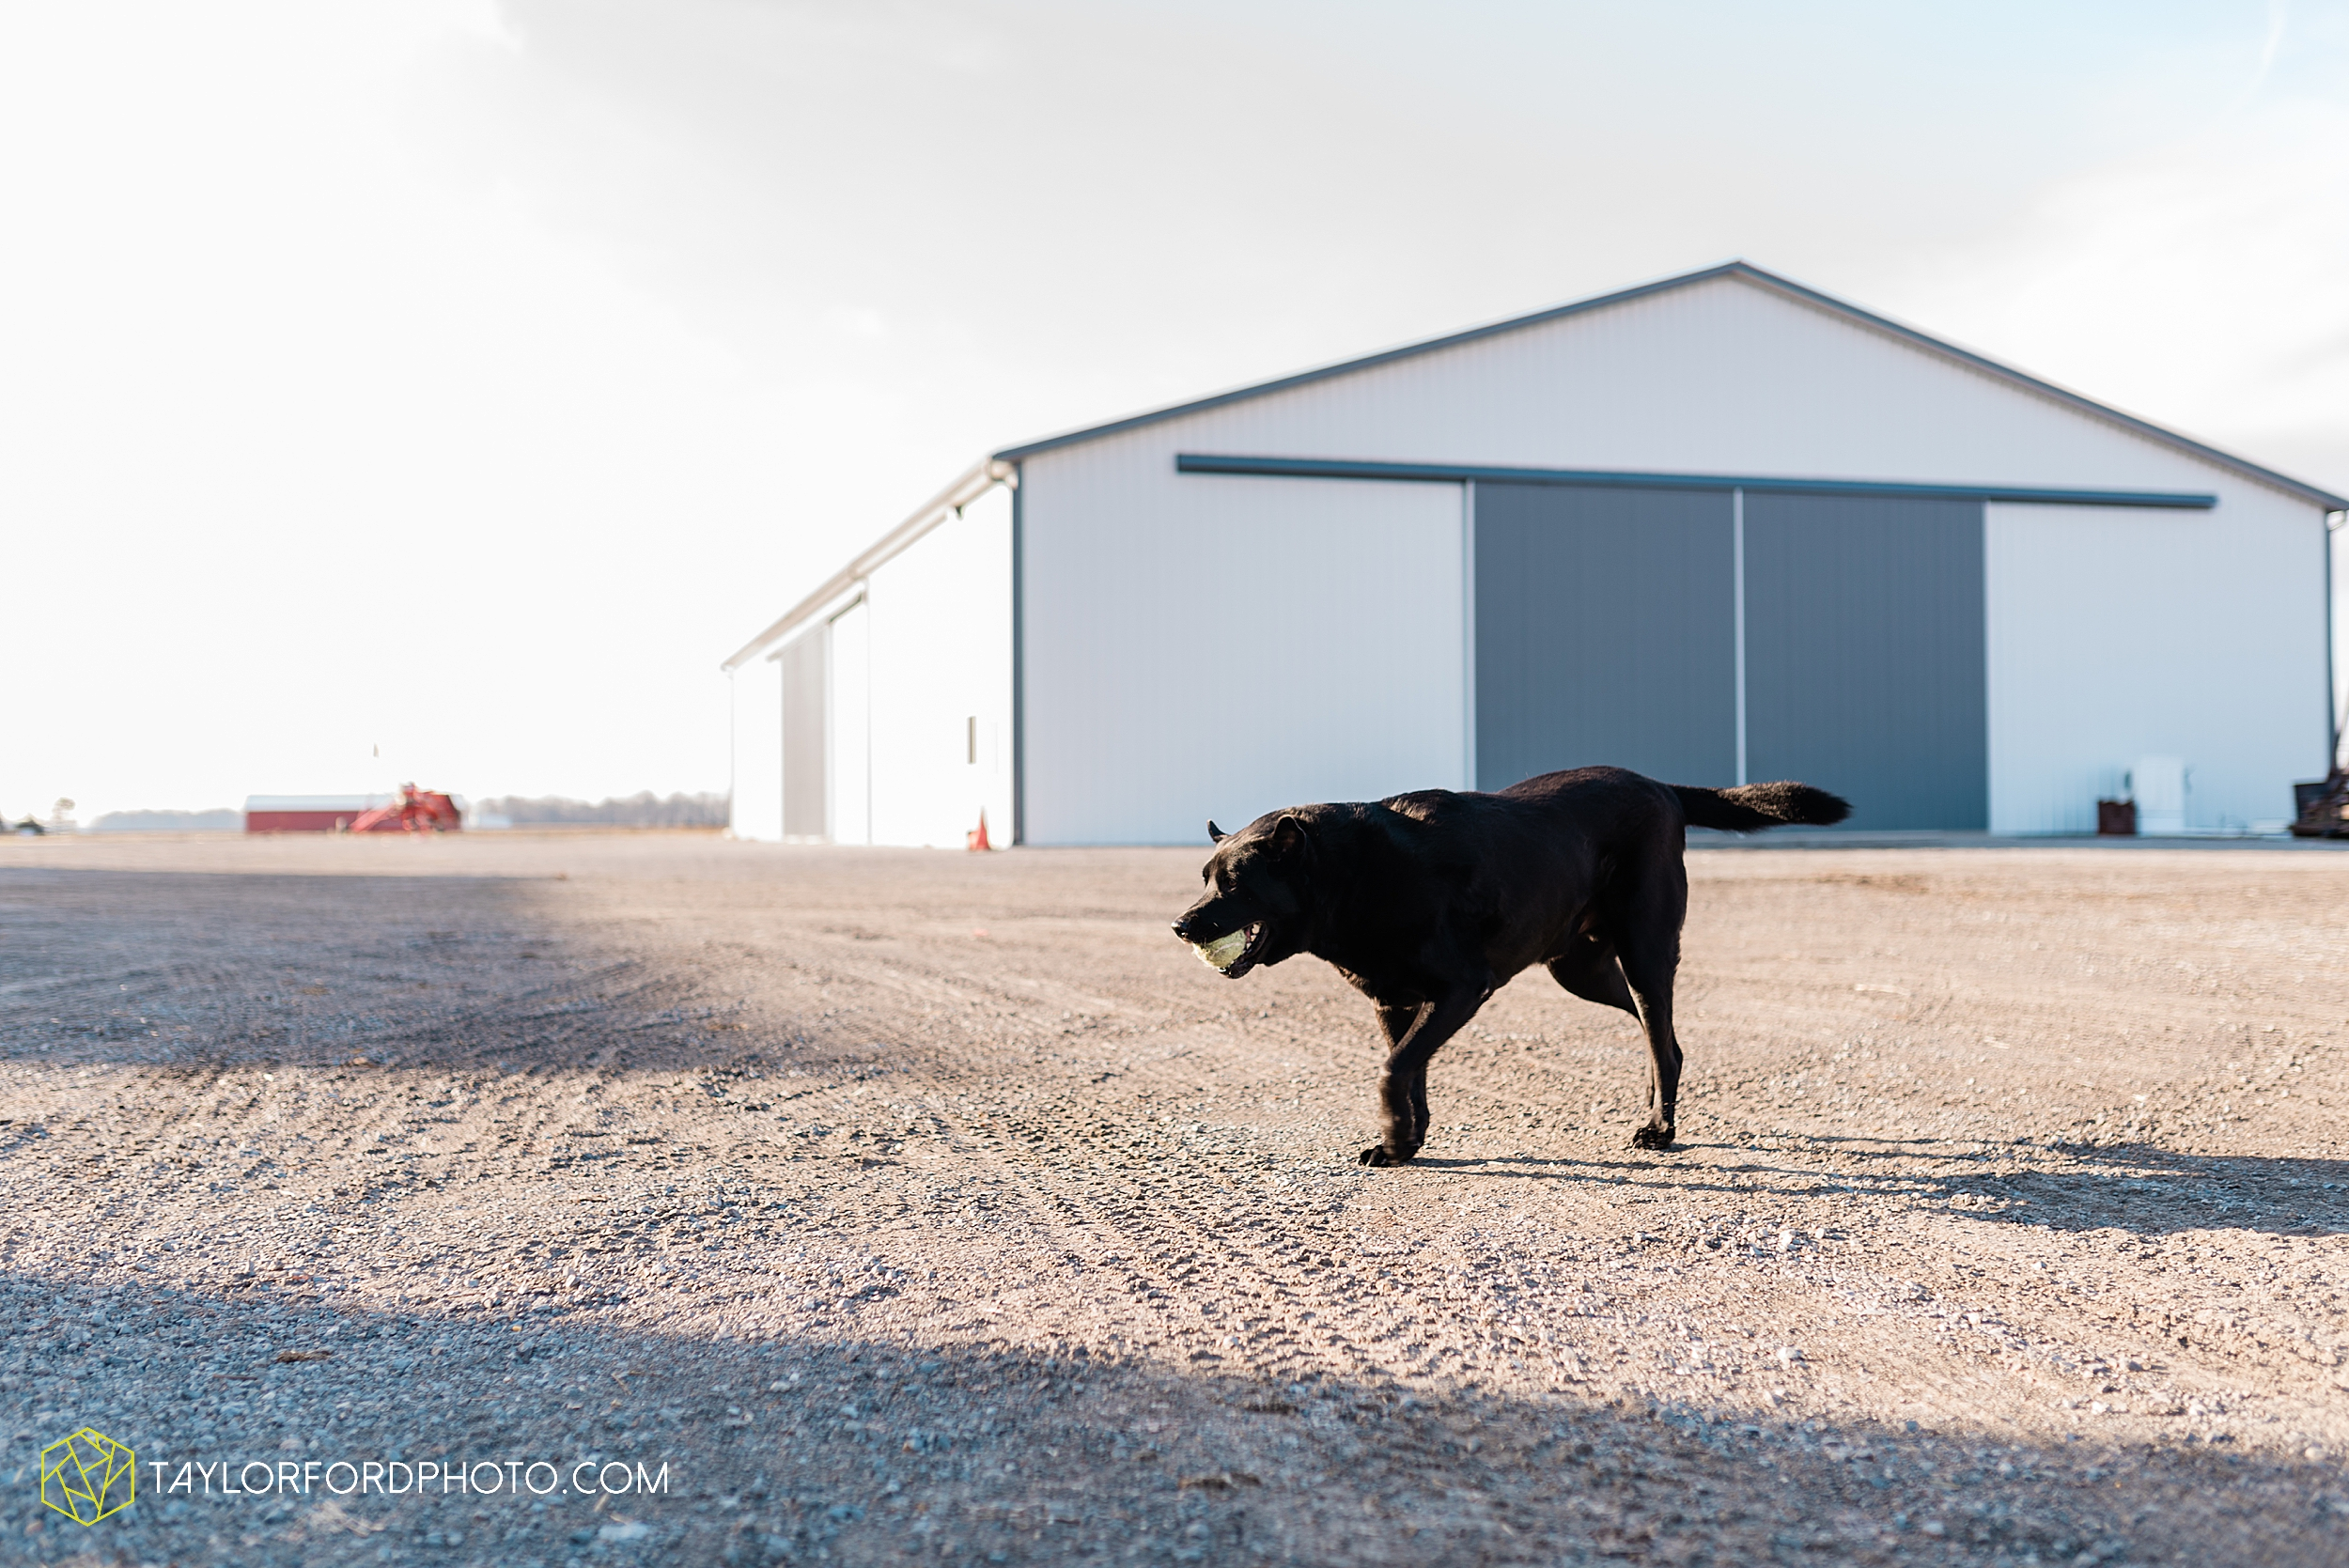 fortney-matthews-extended-family-van-wert-ohio-at-home-family-farm-photography-taylor-ford-hirschy-photographer_2056.jpg